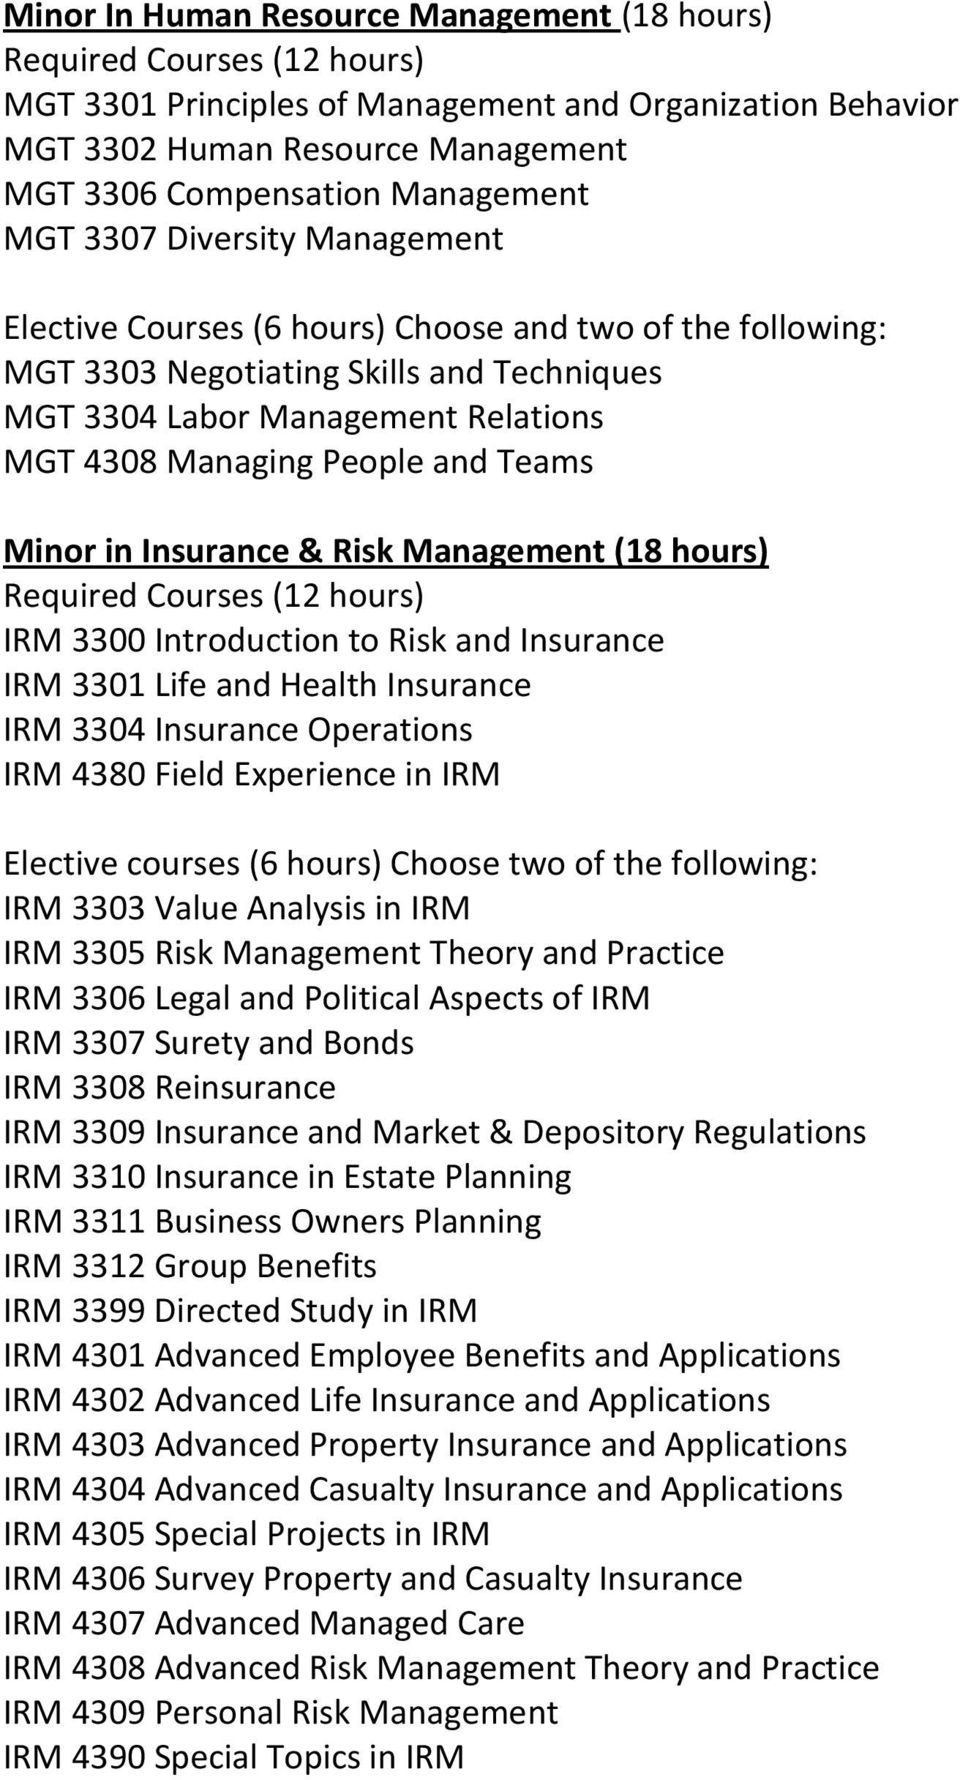 Introduction to Risk and Insurance IRM 3301 Life and Health Insurance IRM 3304 Insurance Operations IRM 4380 Field Experience in IRM Elective courses (6 hours) Choose two of the following: IRM 3303